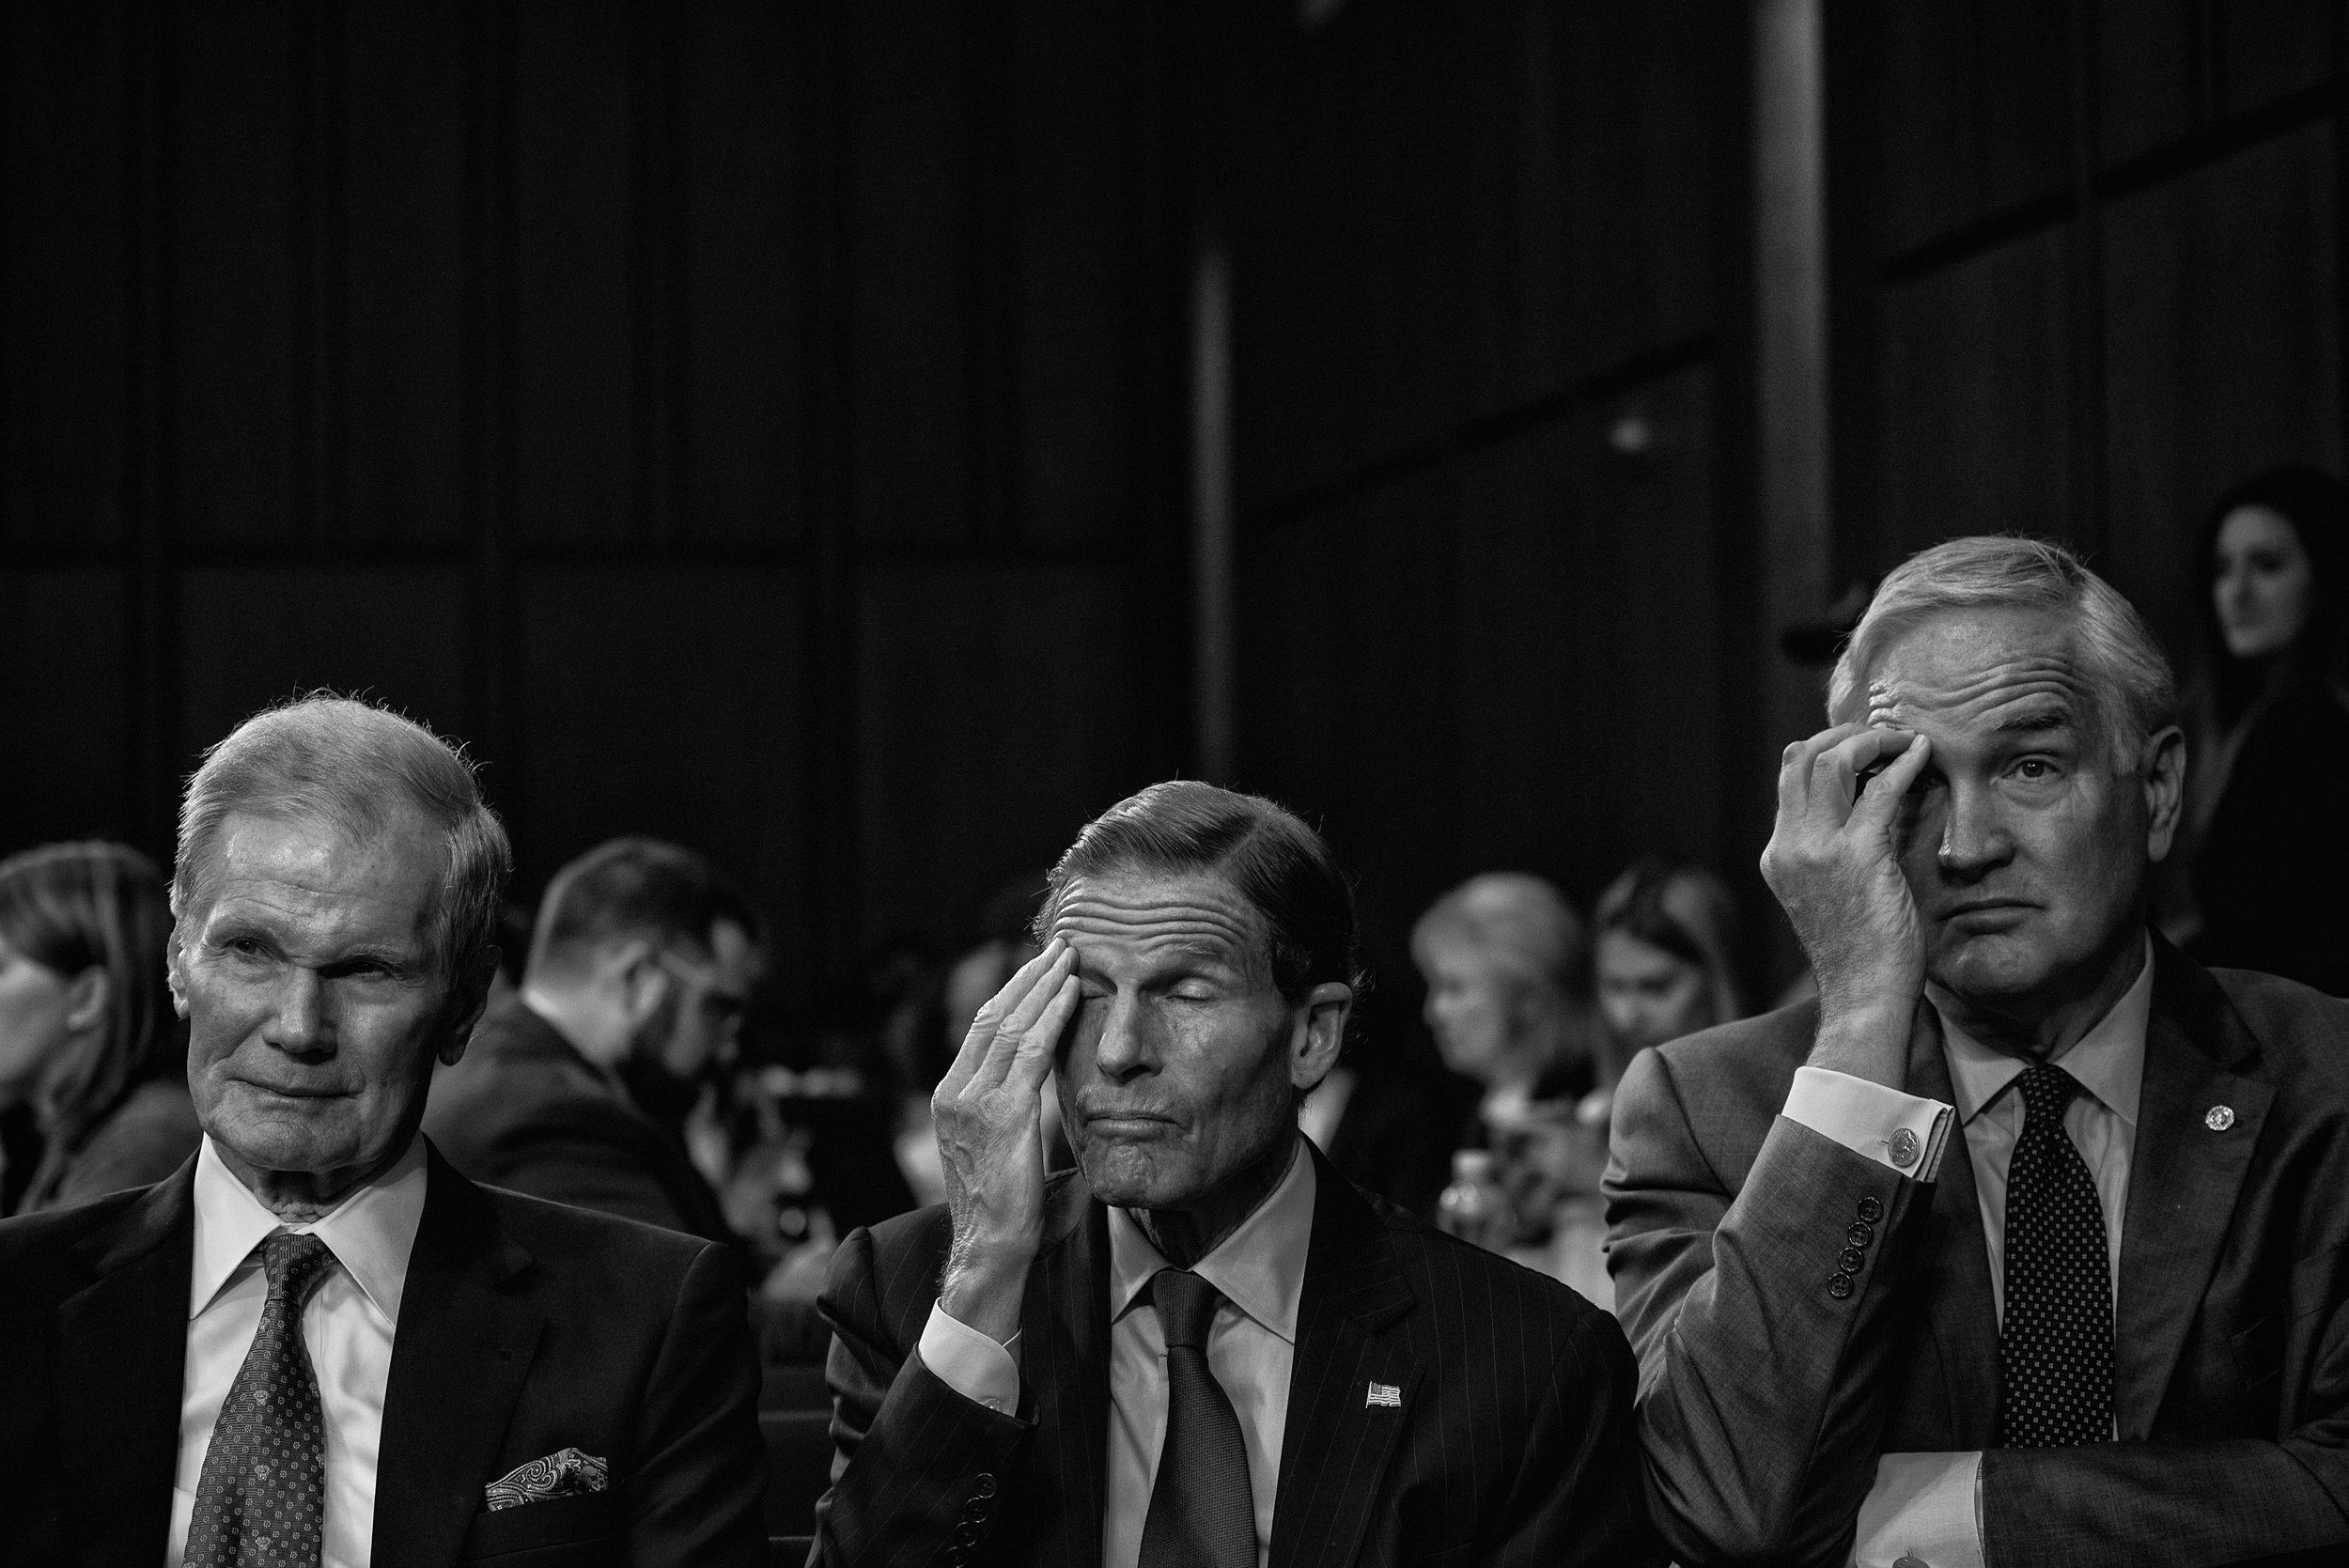 Day 145: Senators Nelson, Blumenthal and Strange listen to the testimony of Attorney General Jeff Sessions before the Senate Intelligence Committee at the Hart Senate Office Building in Washington, DC on June 13, 2017.